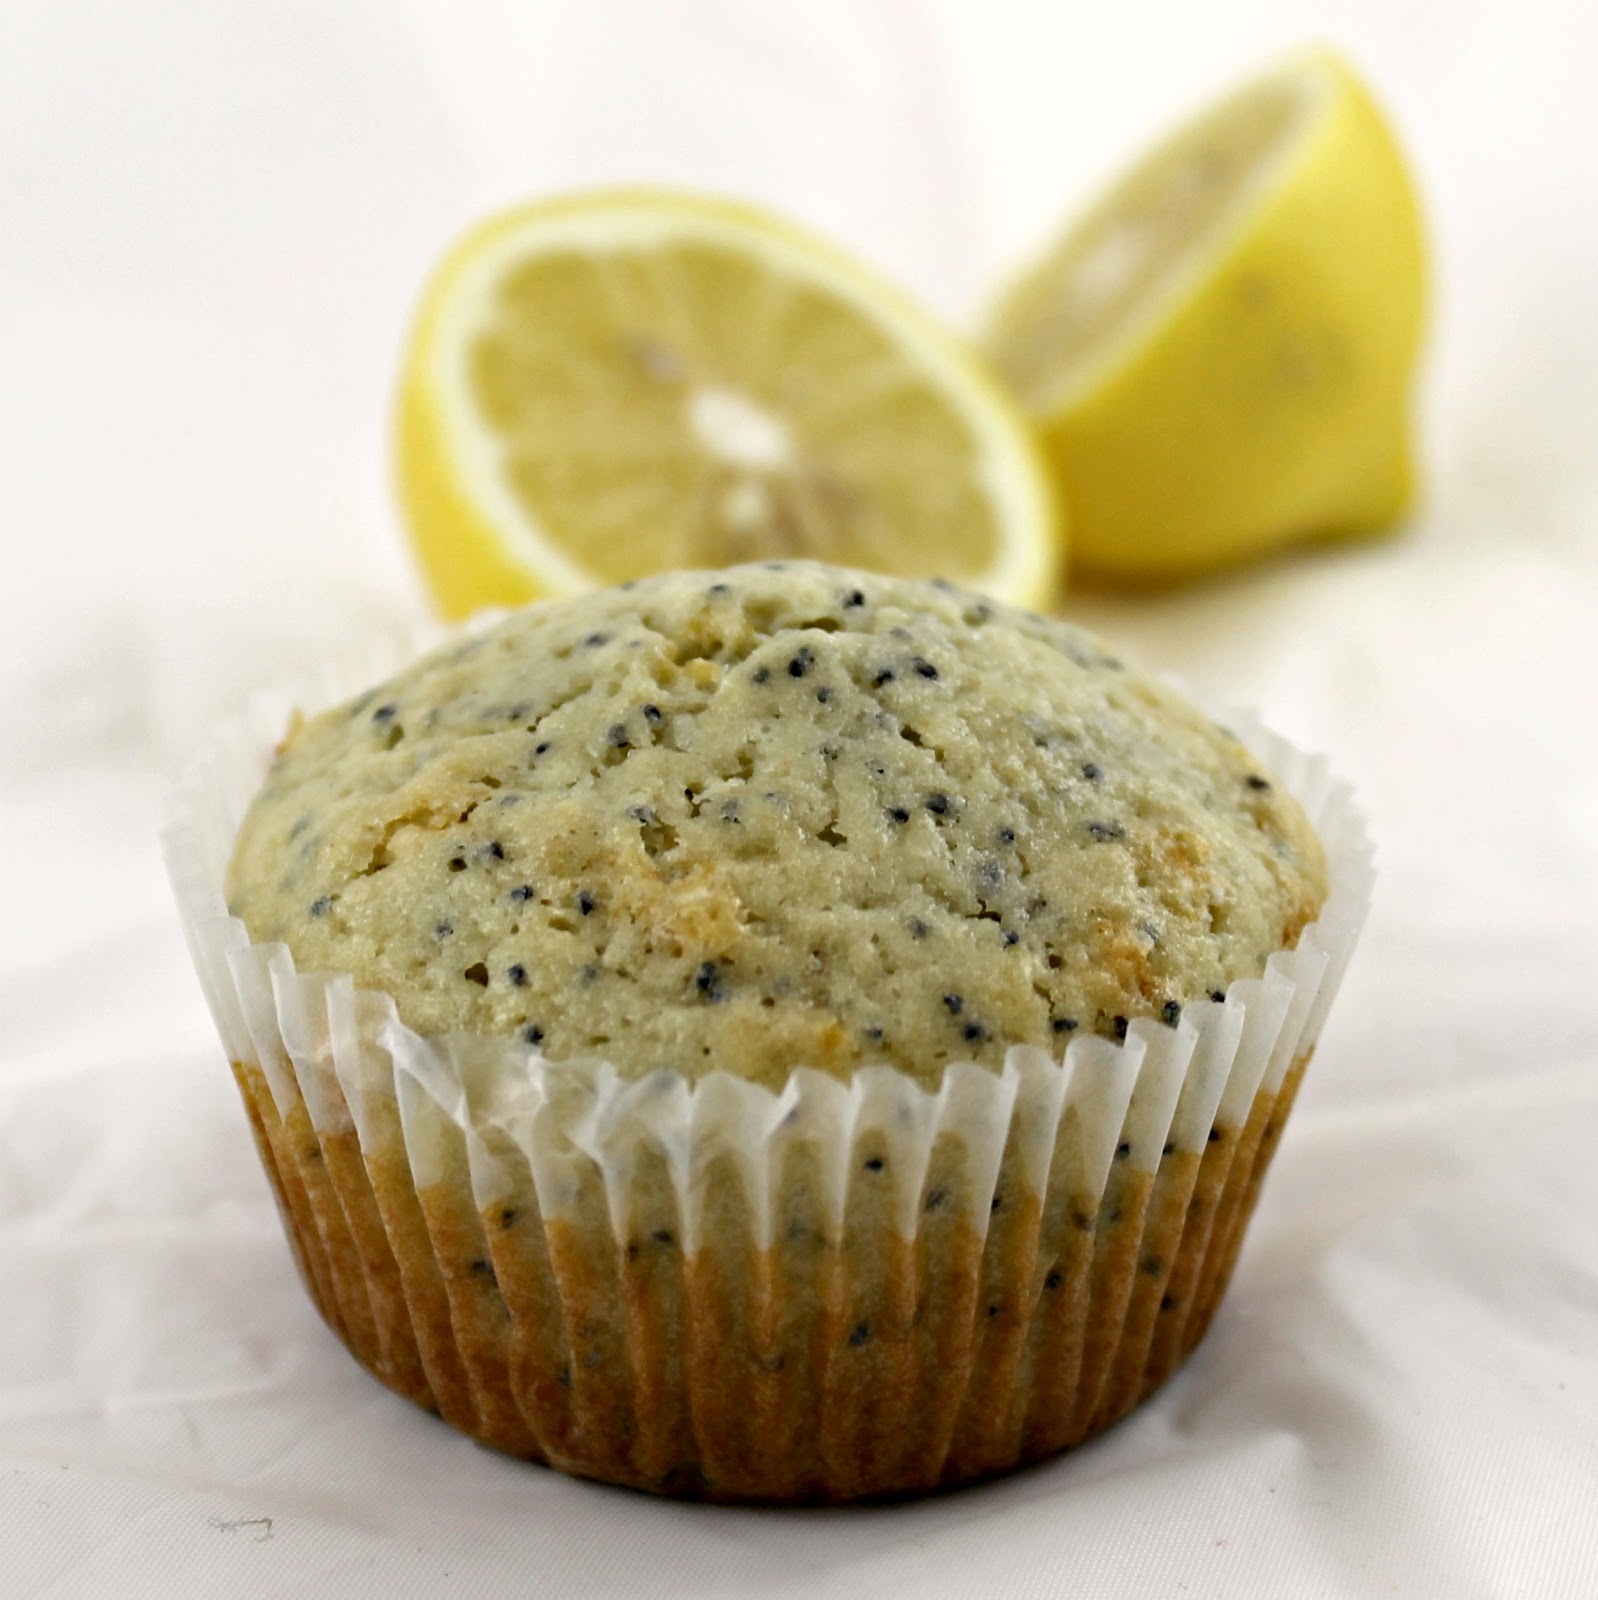 Coconut-Lemon Poppy Seed Muffins | I Can Cook That